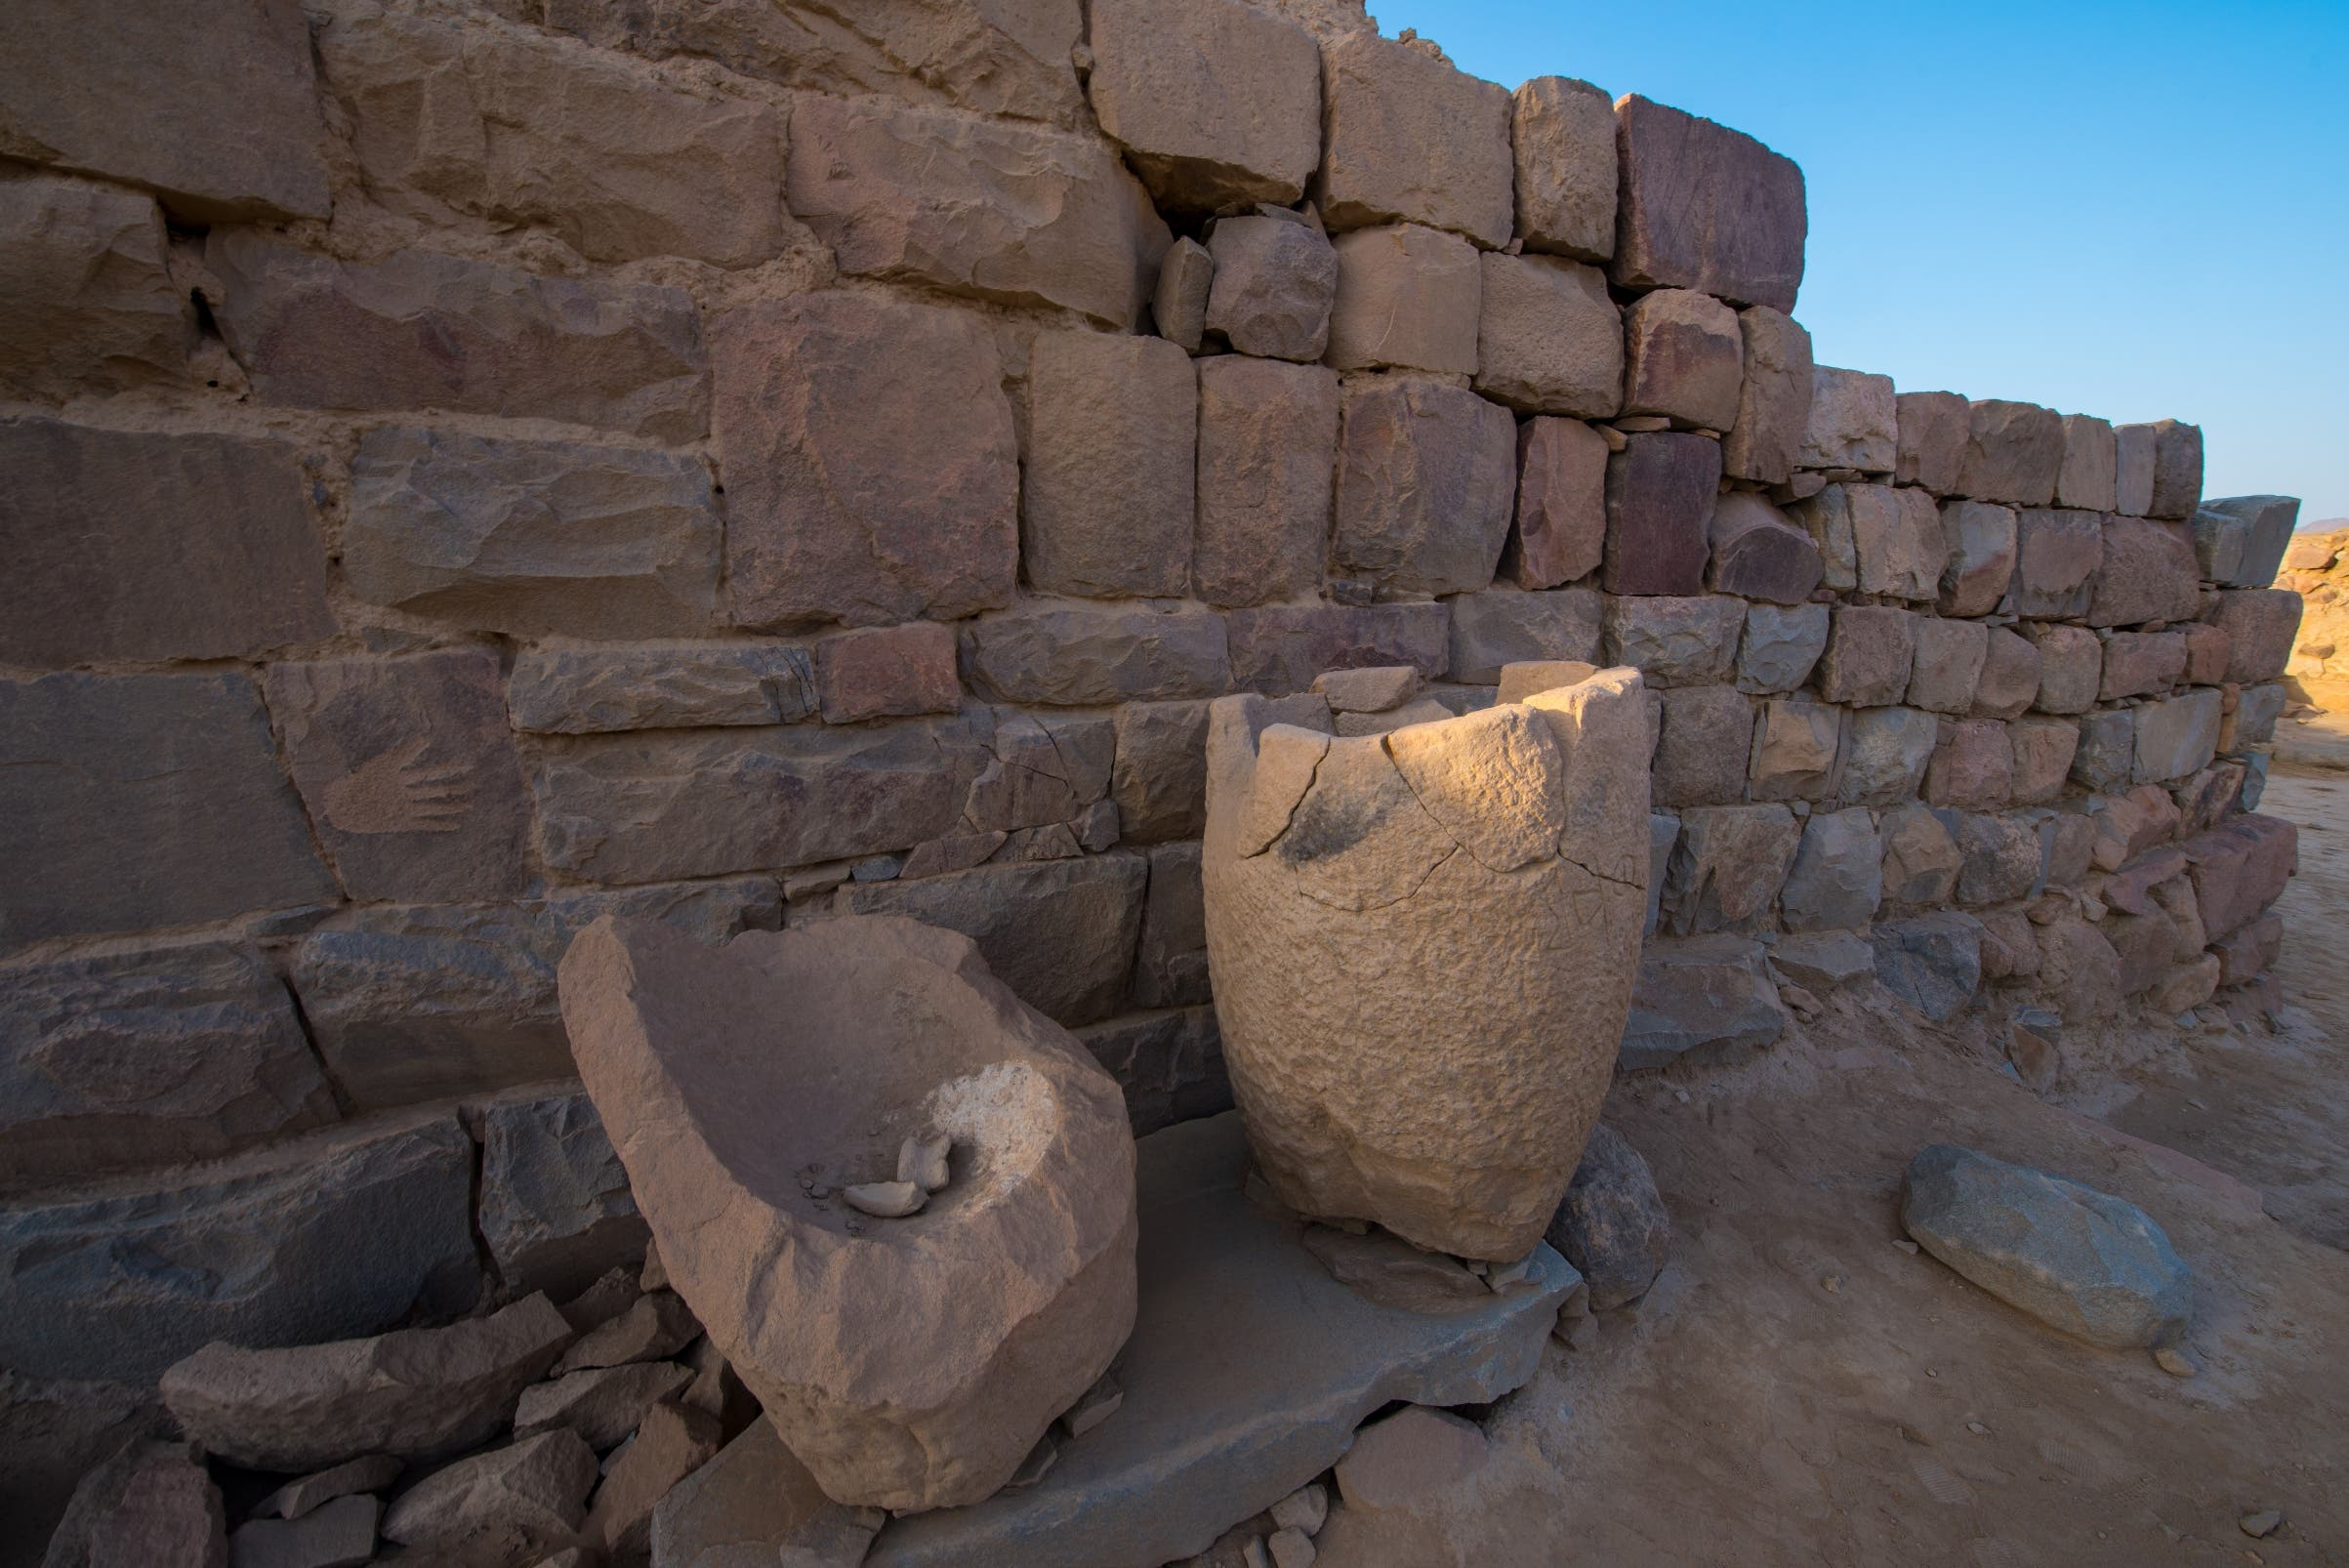 Saudi-French excavation mission in Najran find coins dating back 1st century AD